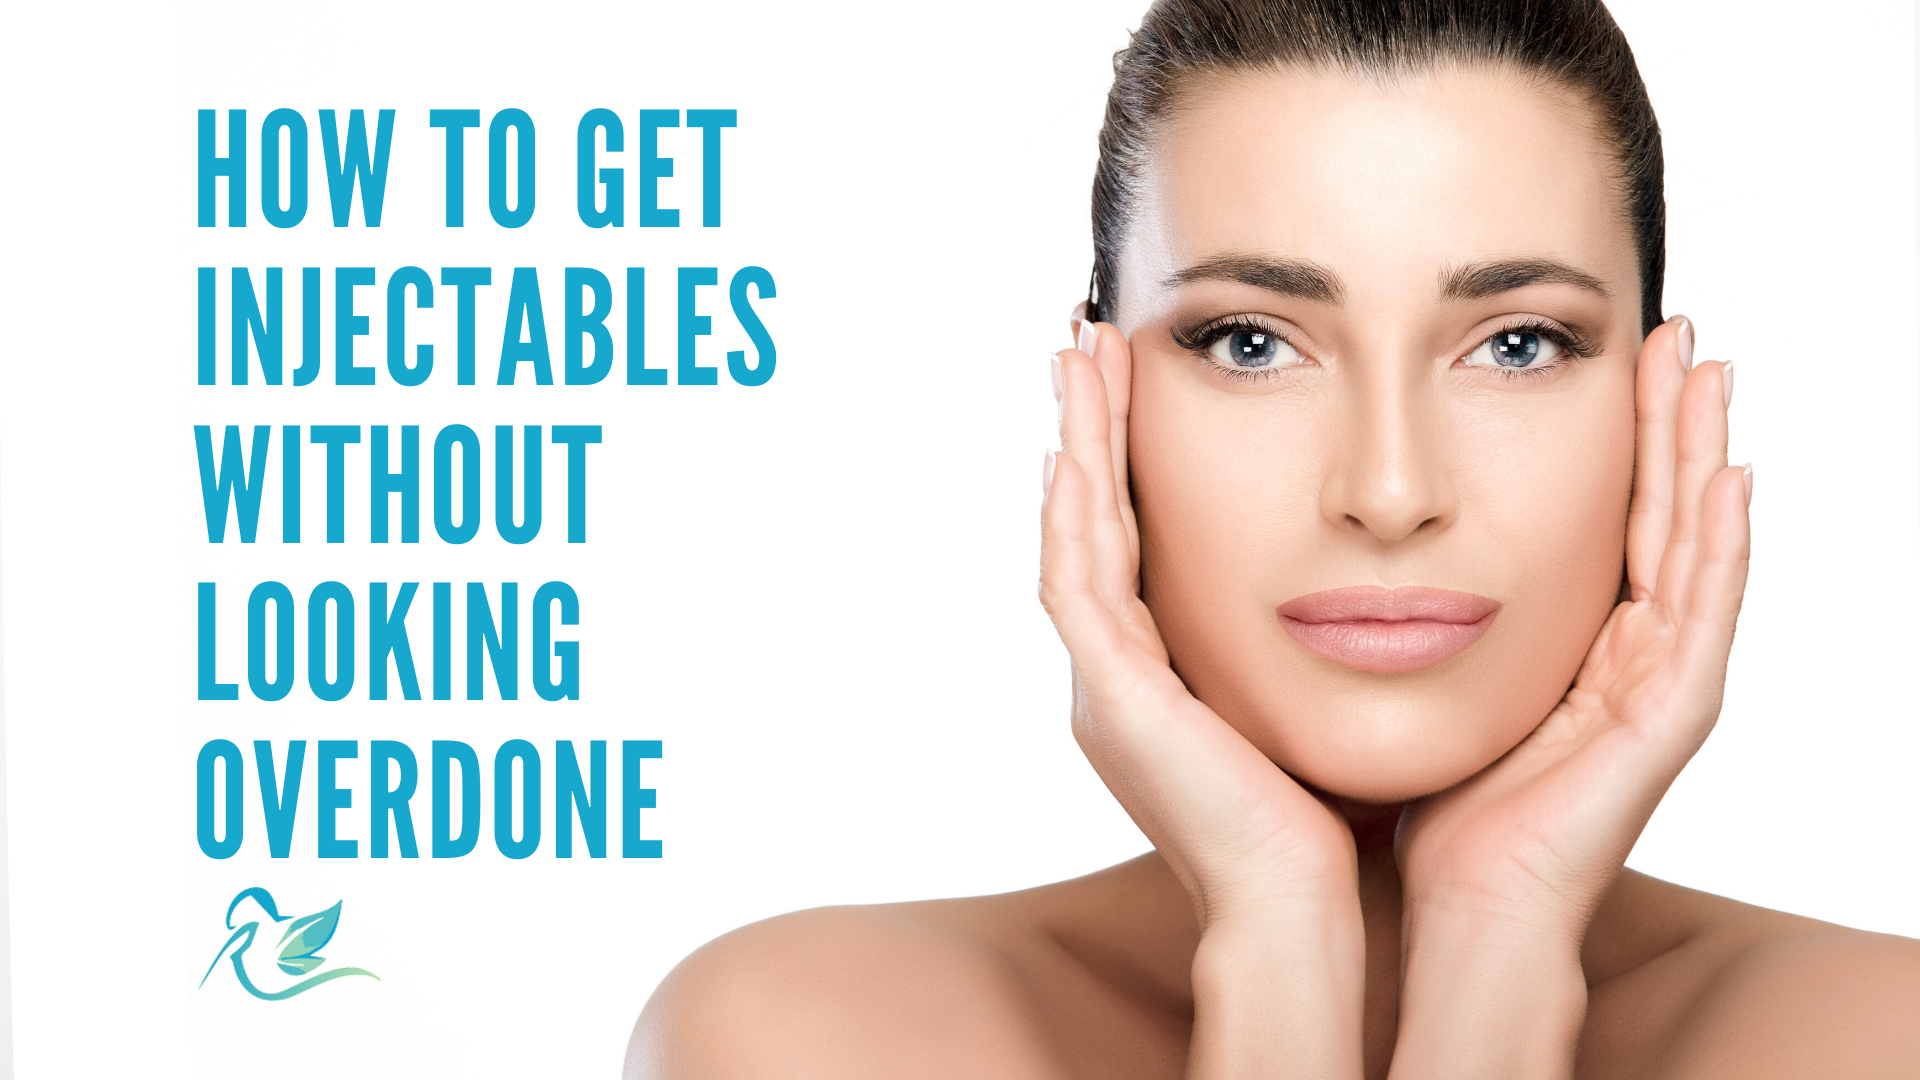 how to get injectables without looking overdone